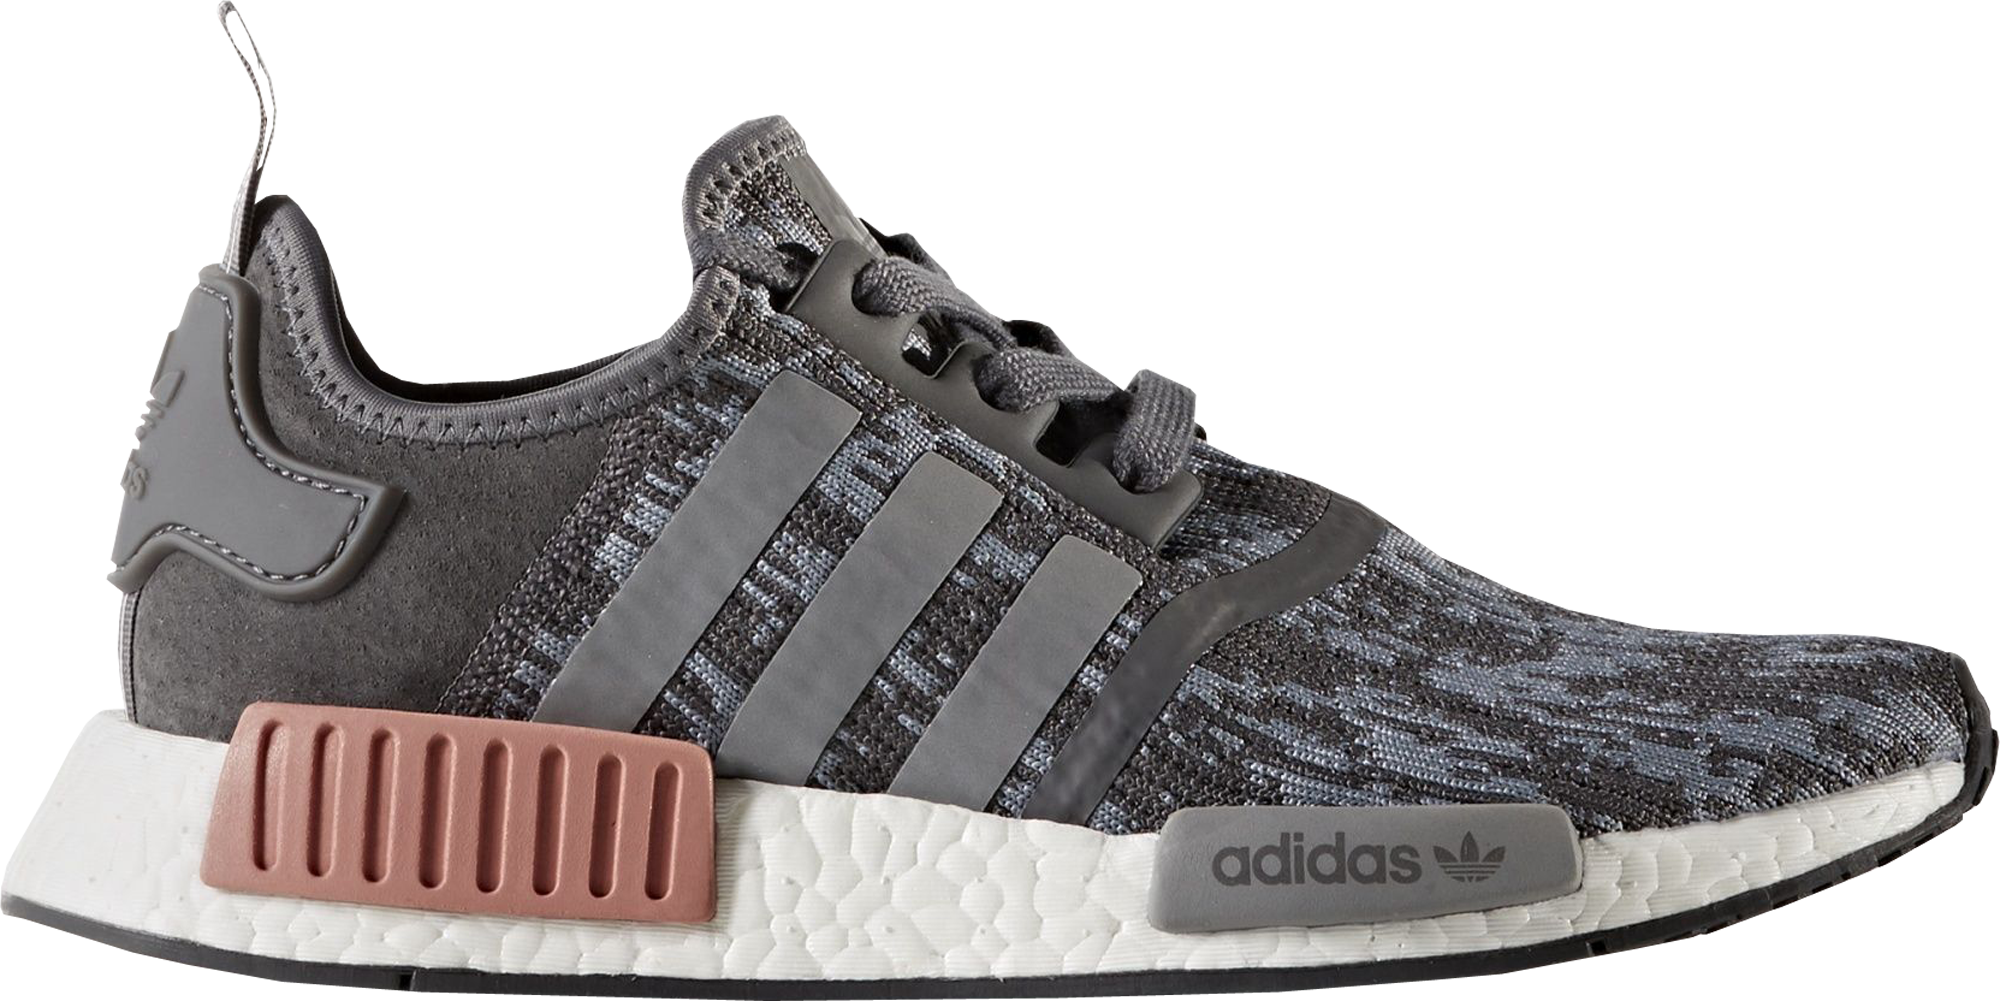 adidas NMD R1 Heather Grey Raw Pink (W)